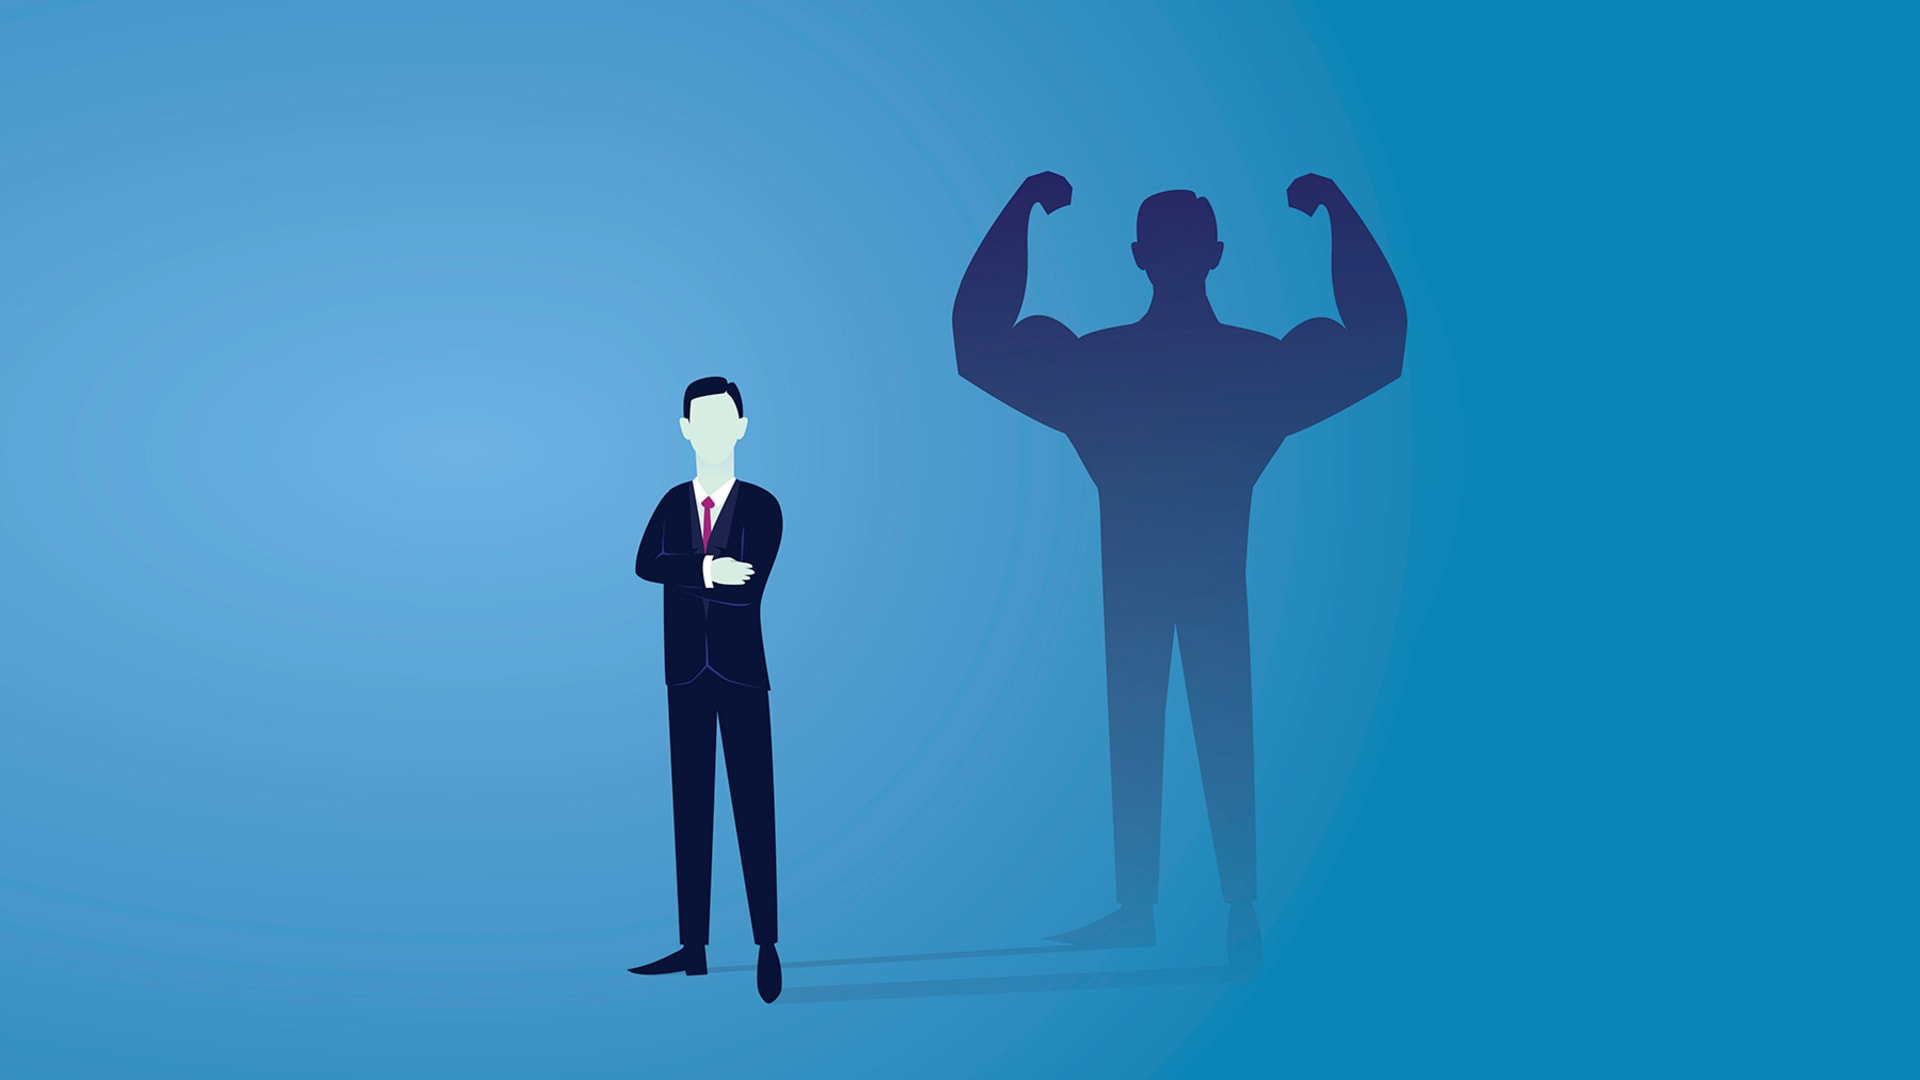 6 Ways an Entrepreneur Wins With Supreme Self-Confidence